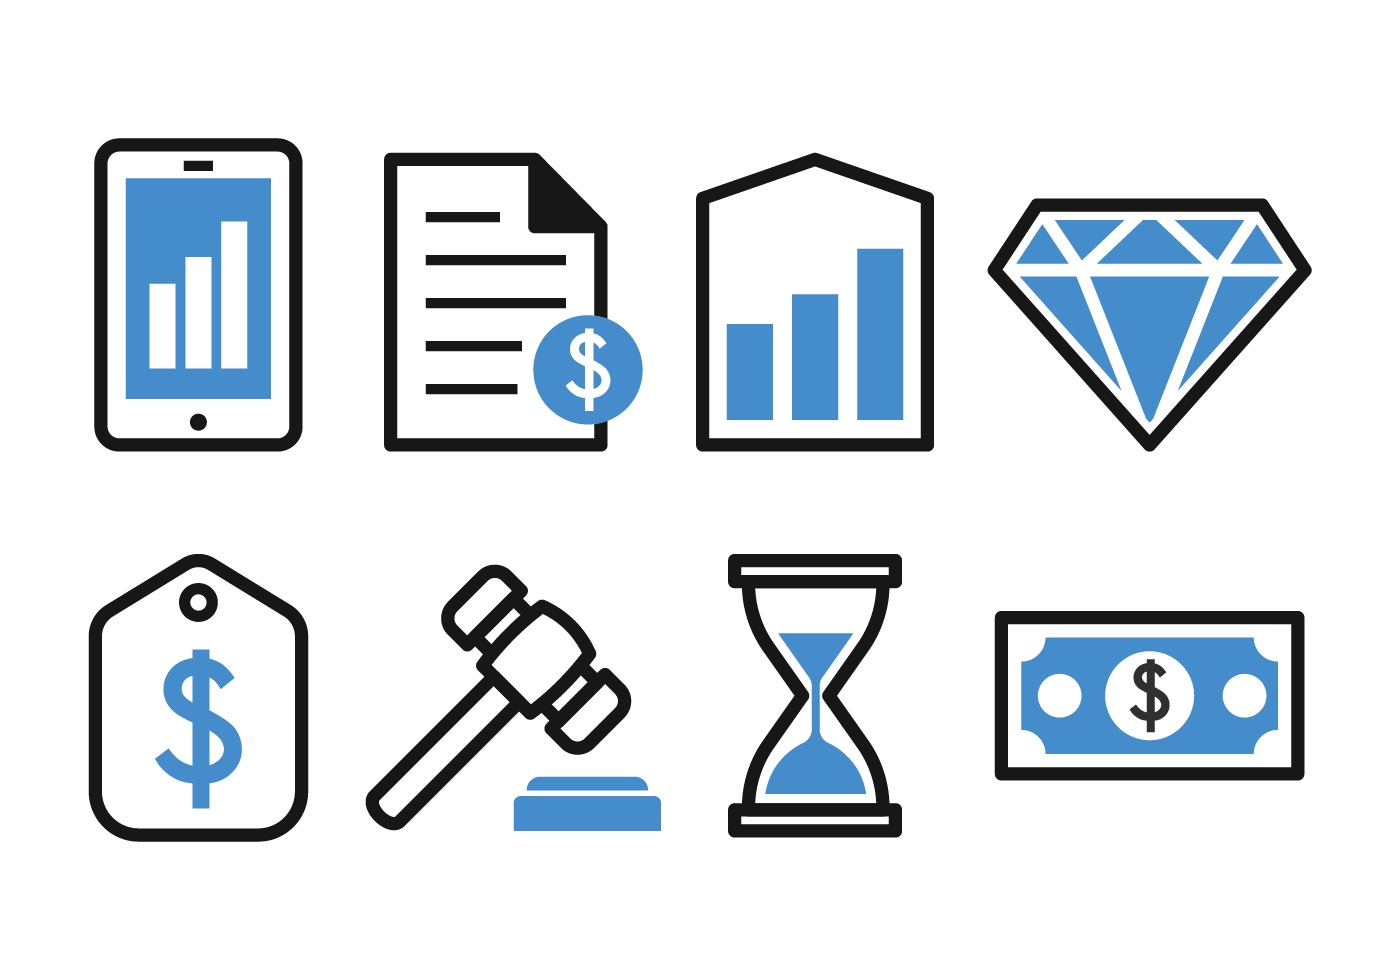 free-business-and-finance-icon-set-vector.jpg